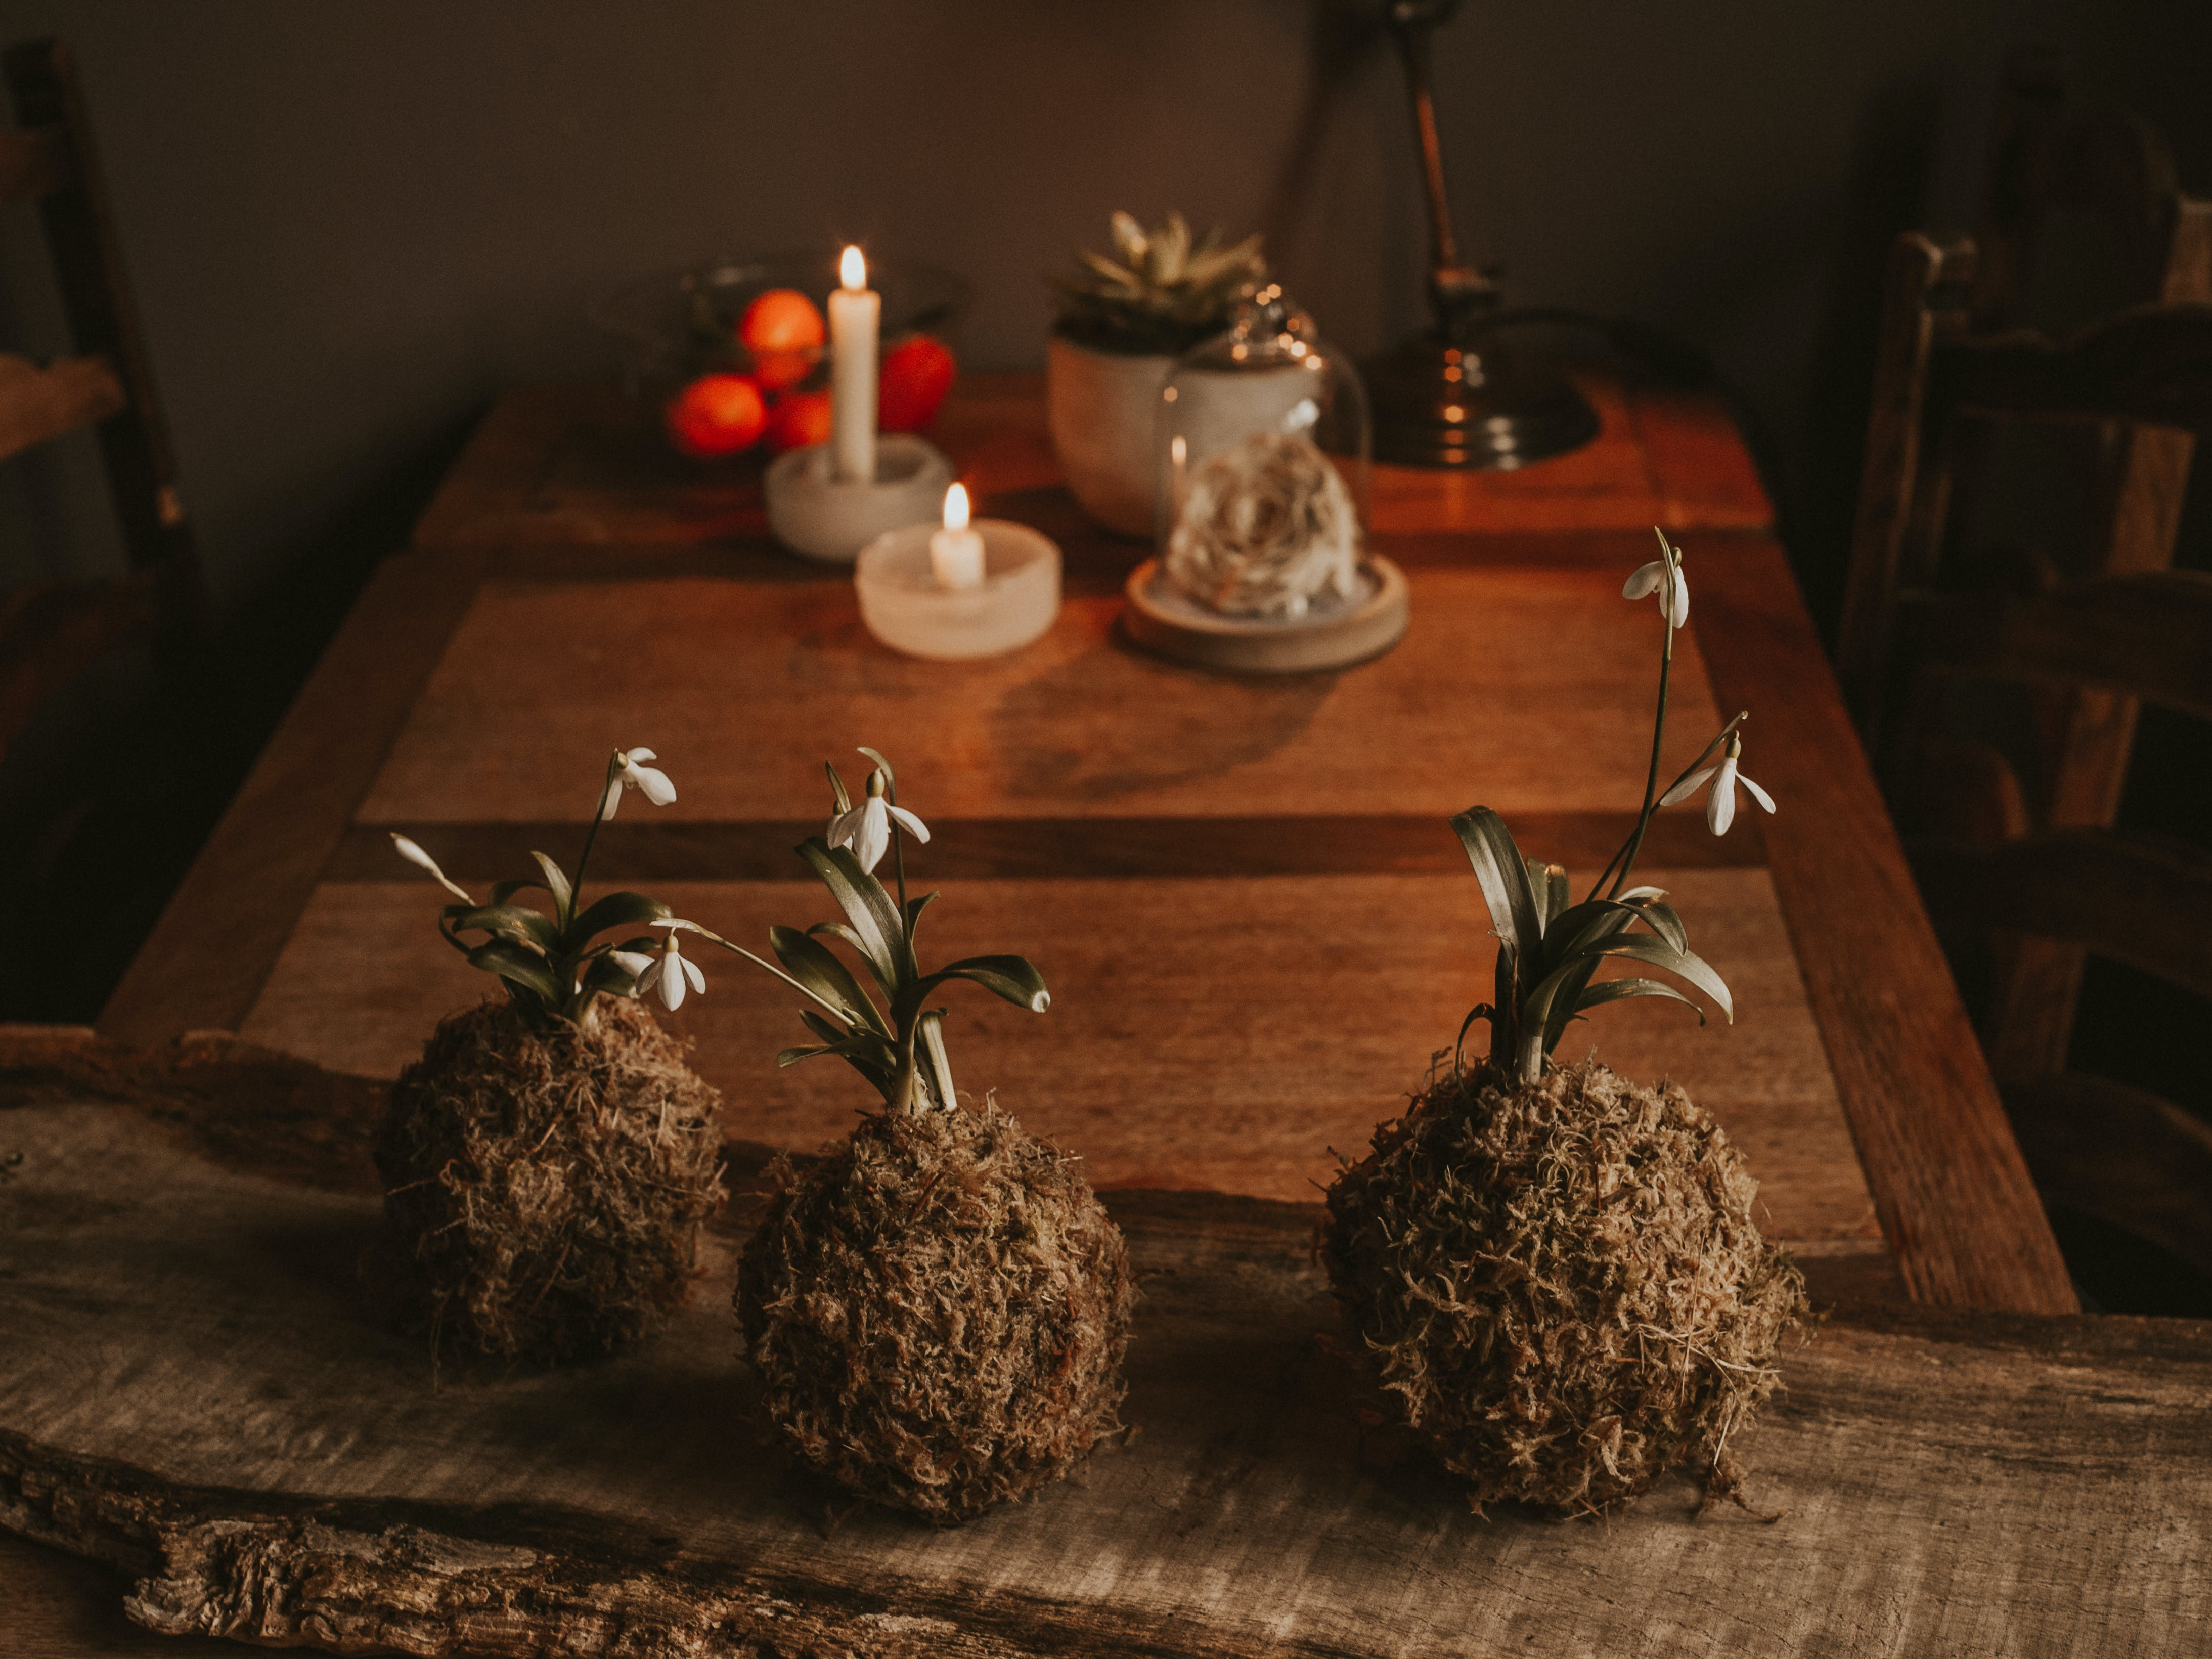 Three Brown Flower Plant on Table